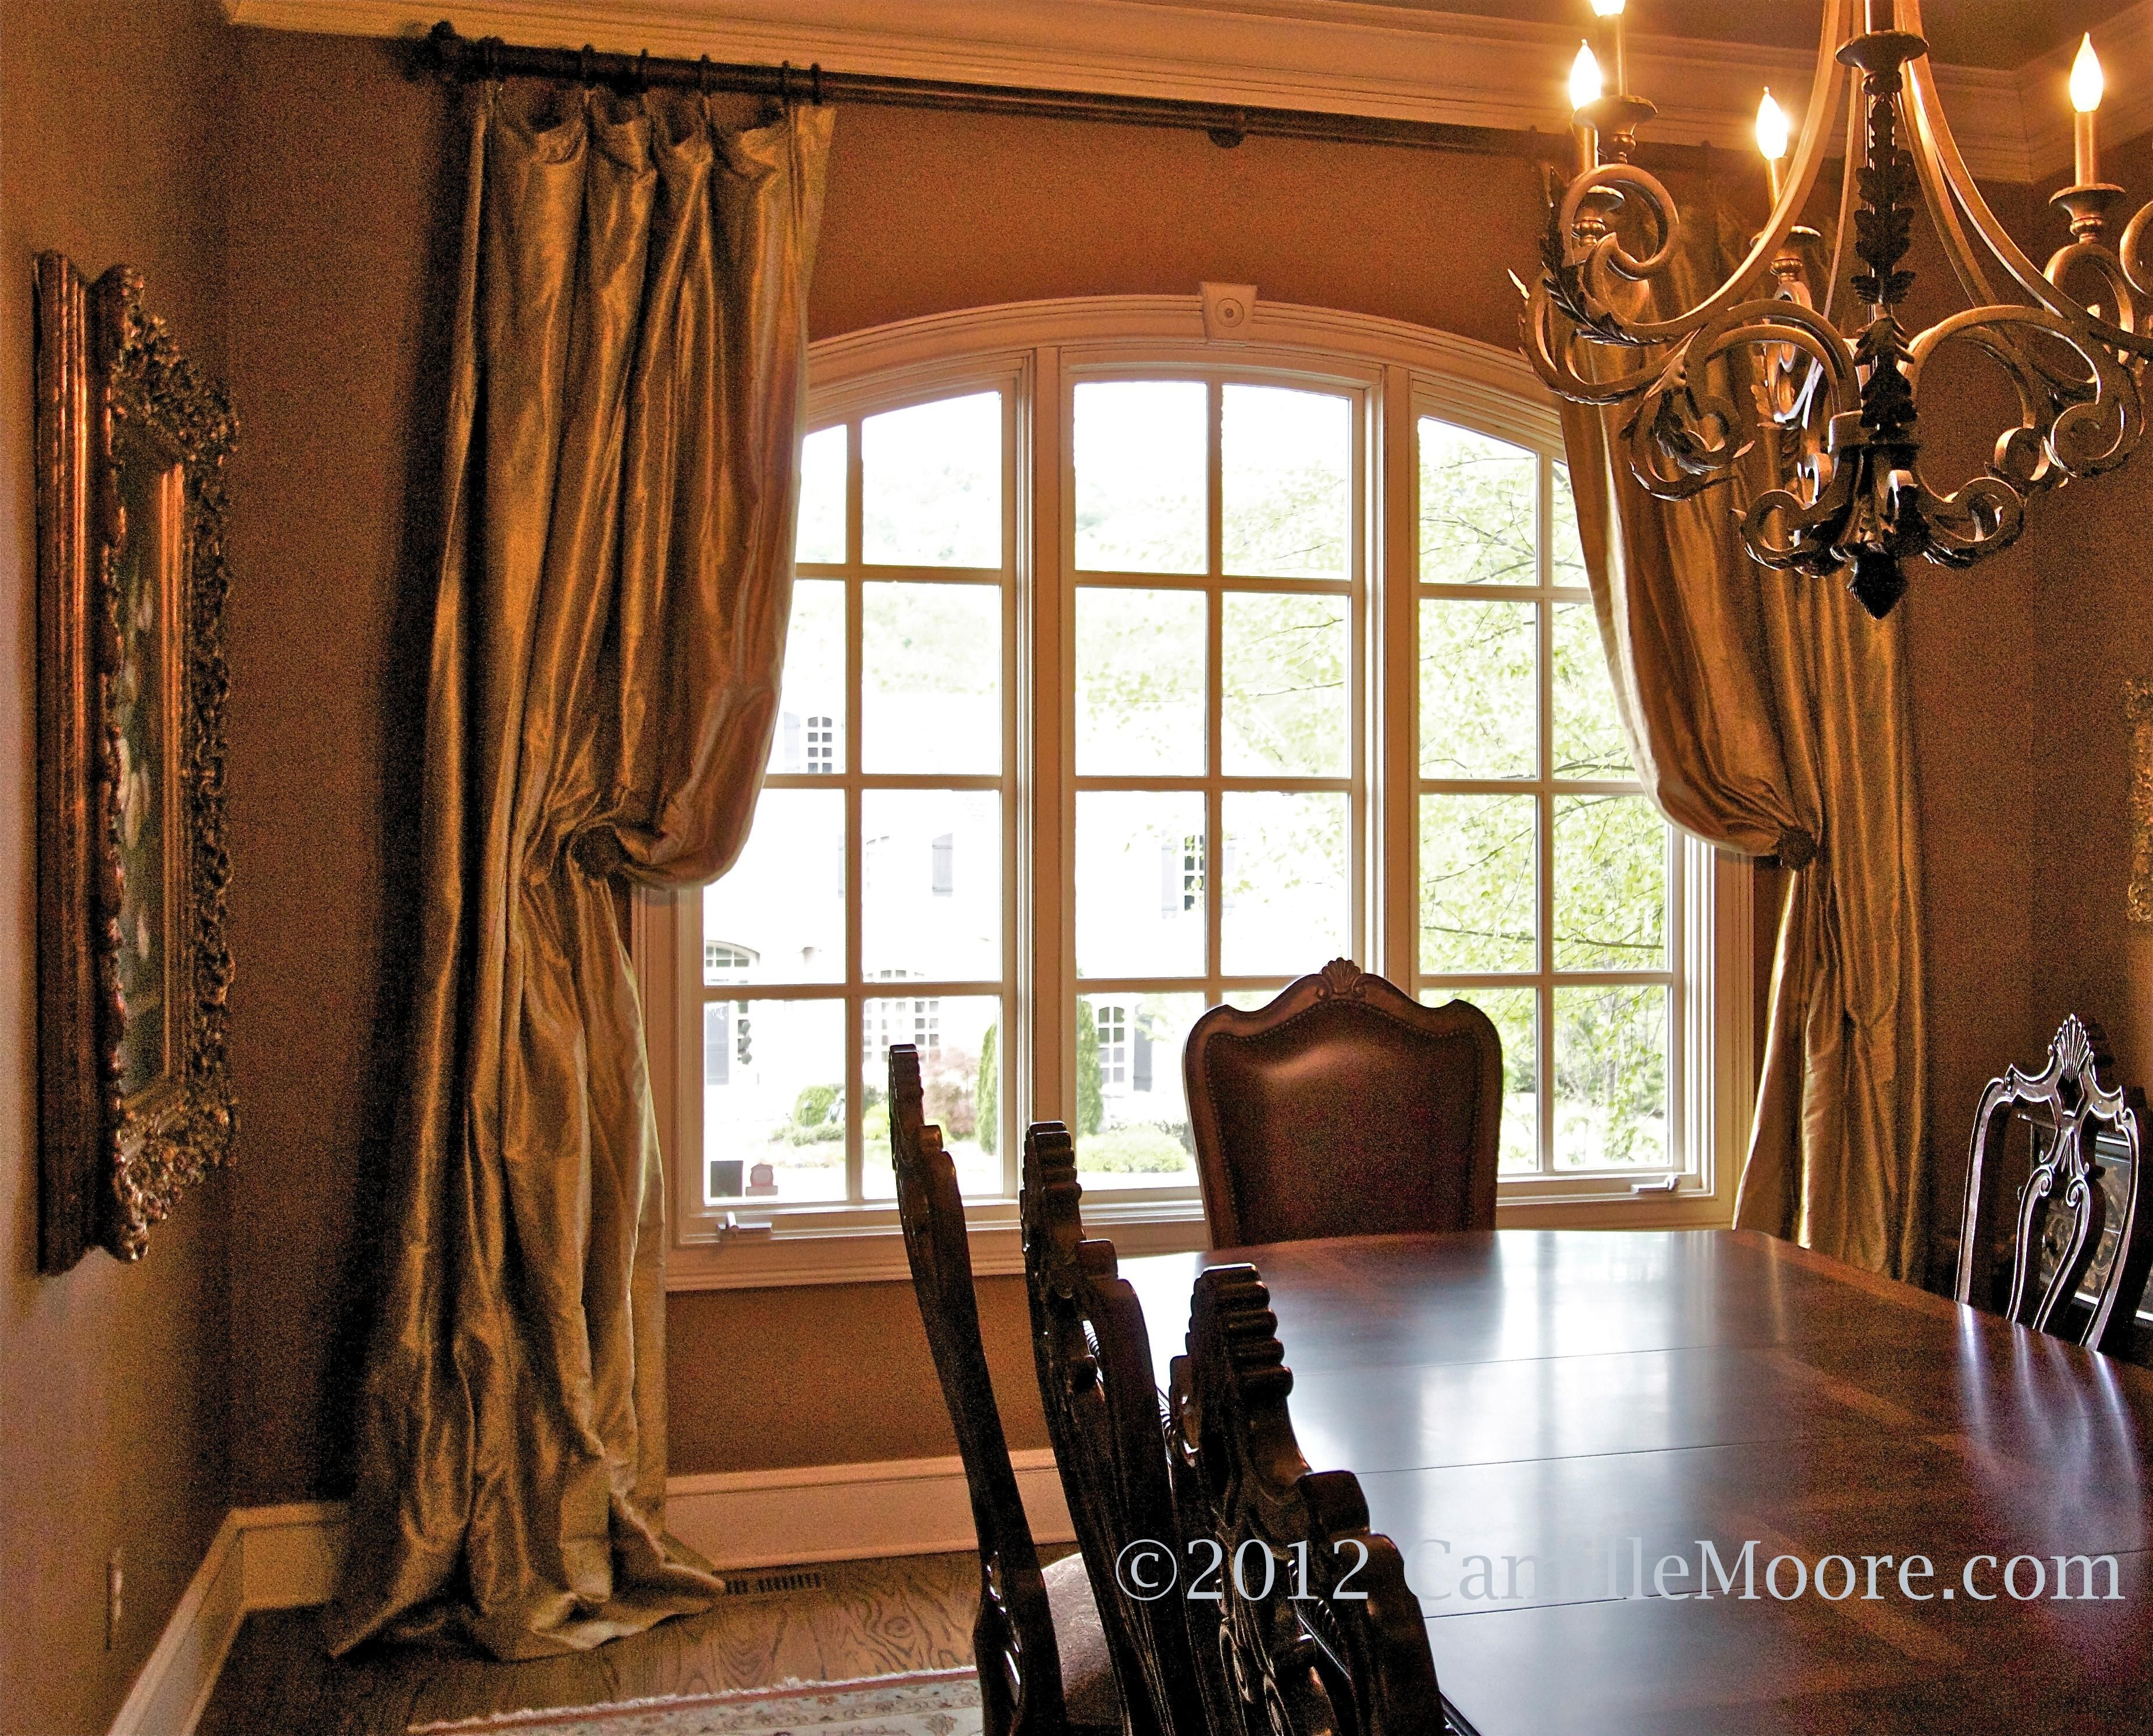 Silk Draperies Pulled Back On Arched Window In Dining Room Window Layjao